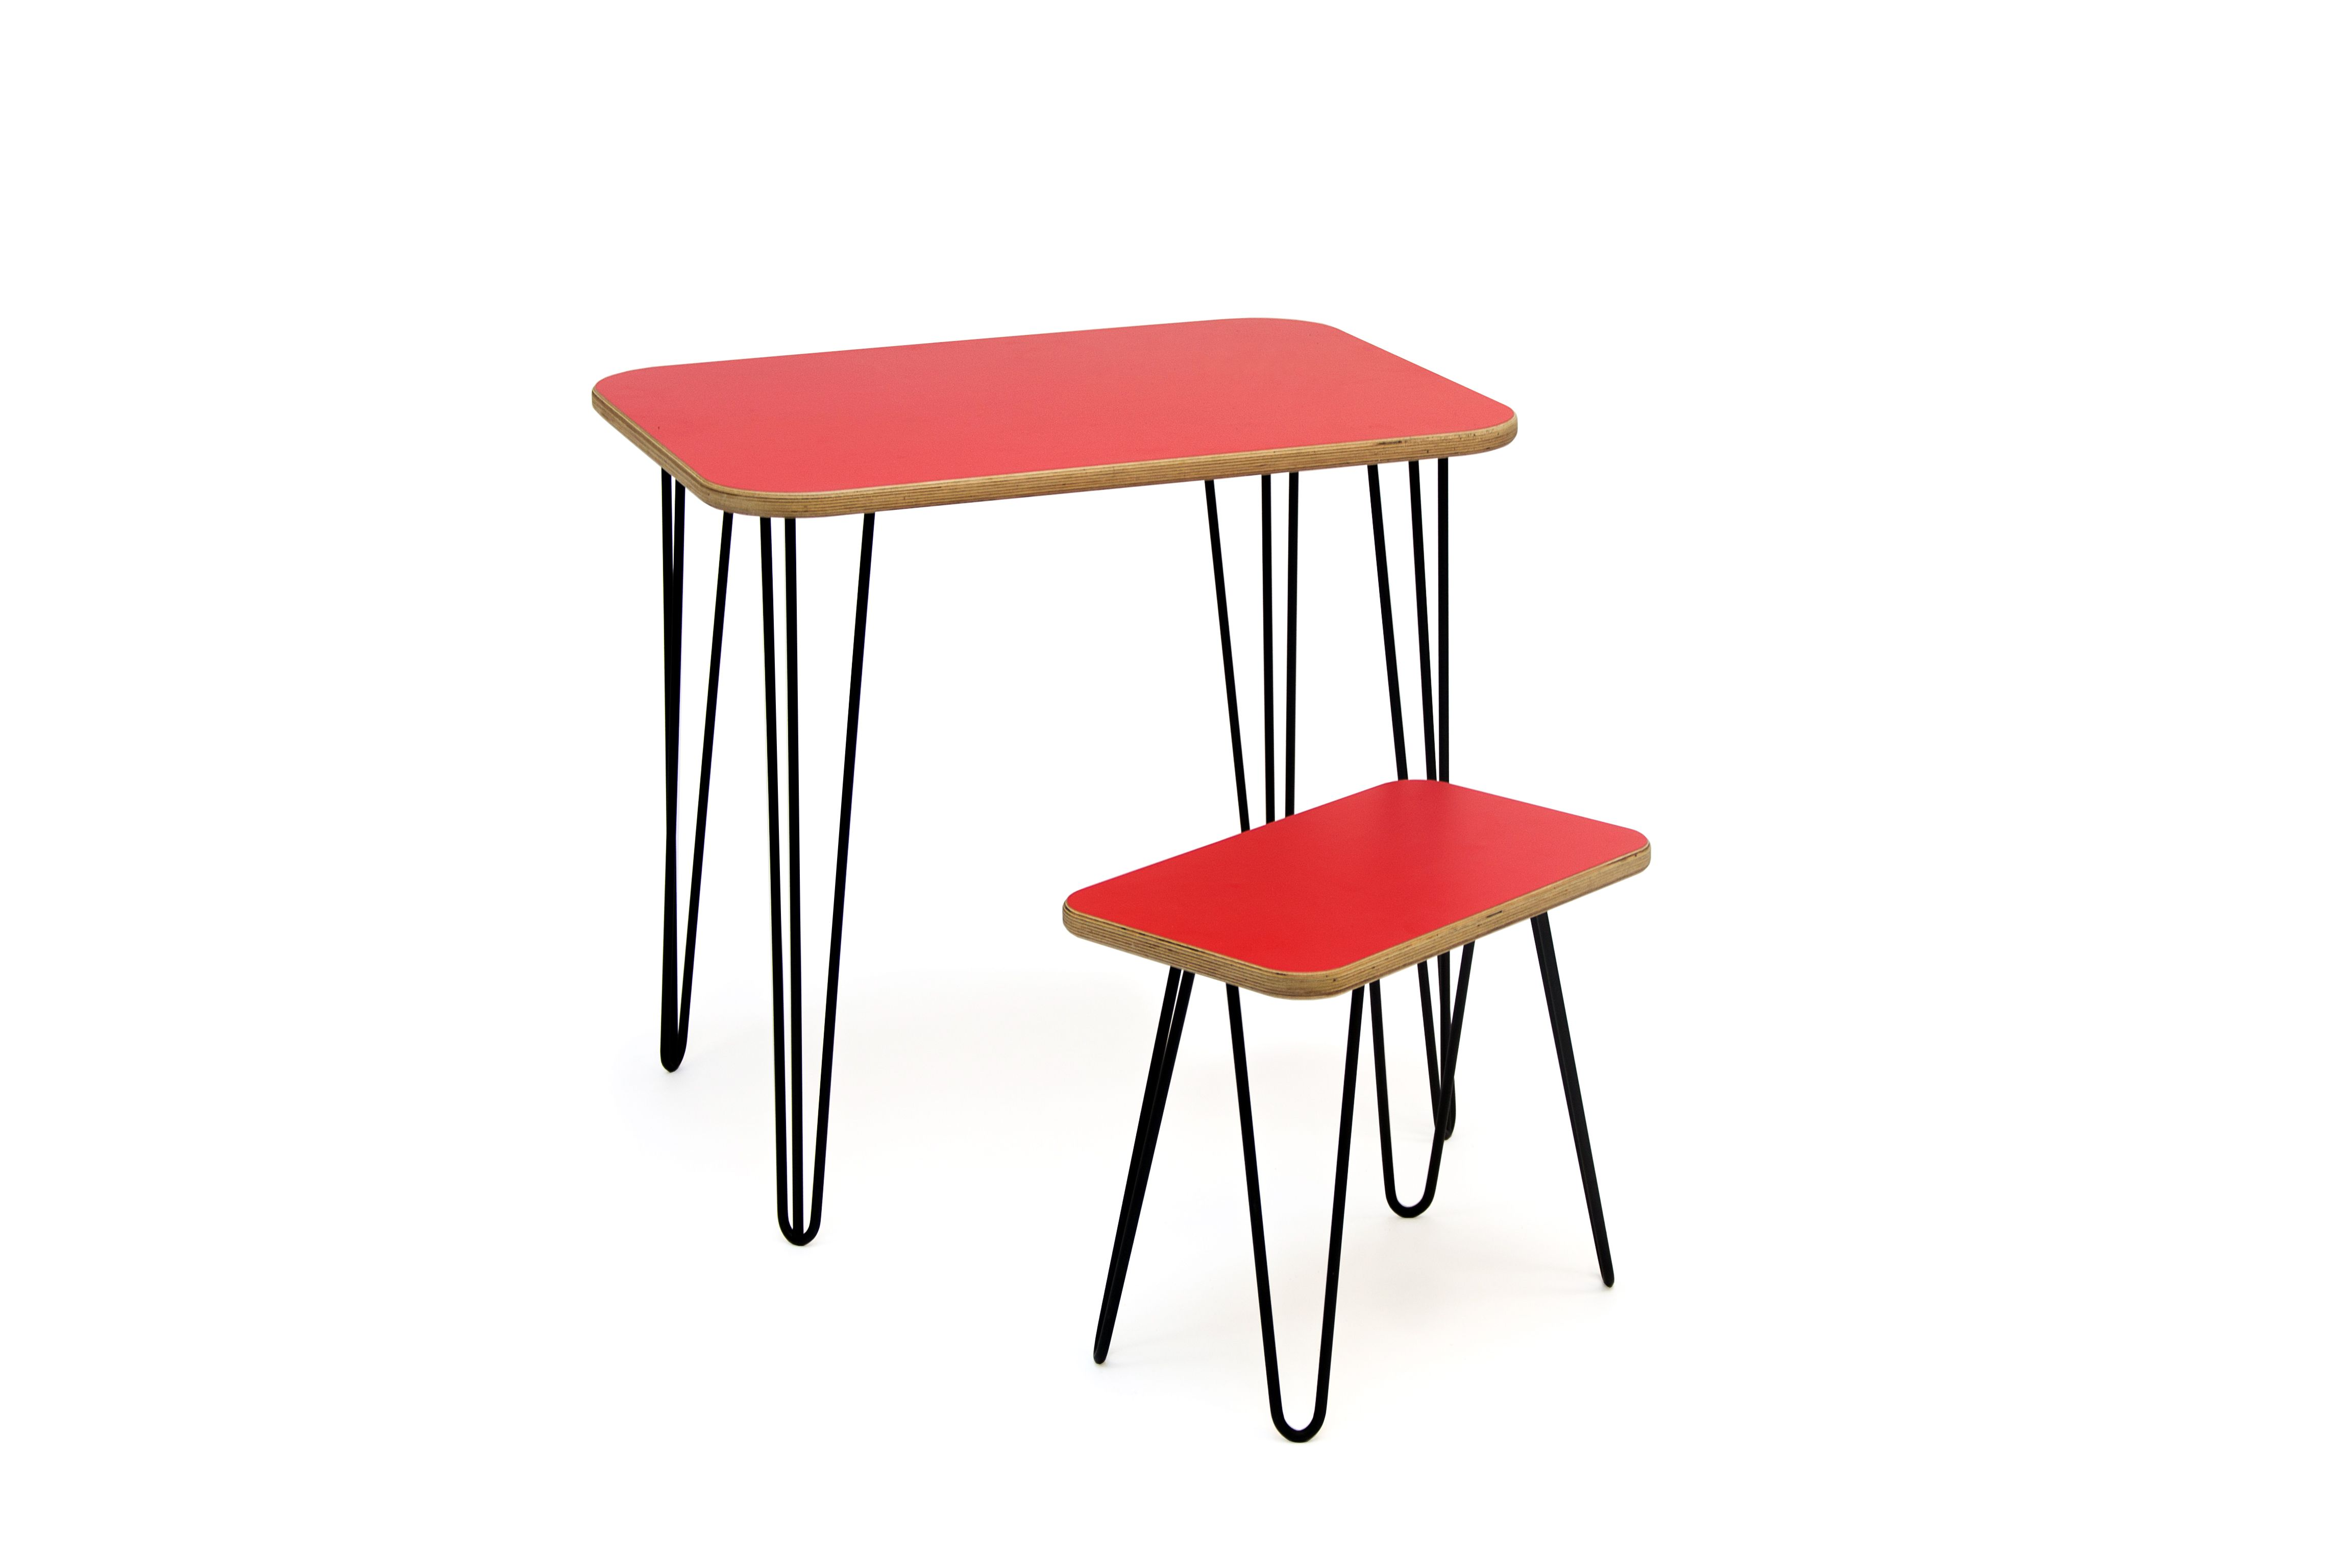 Englert Table & Stool Set. Formica laminated birch plywood